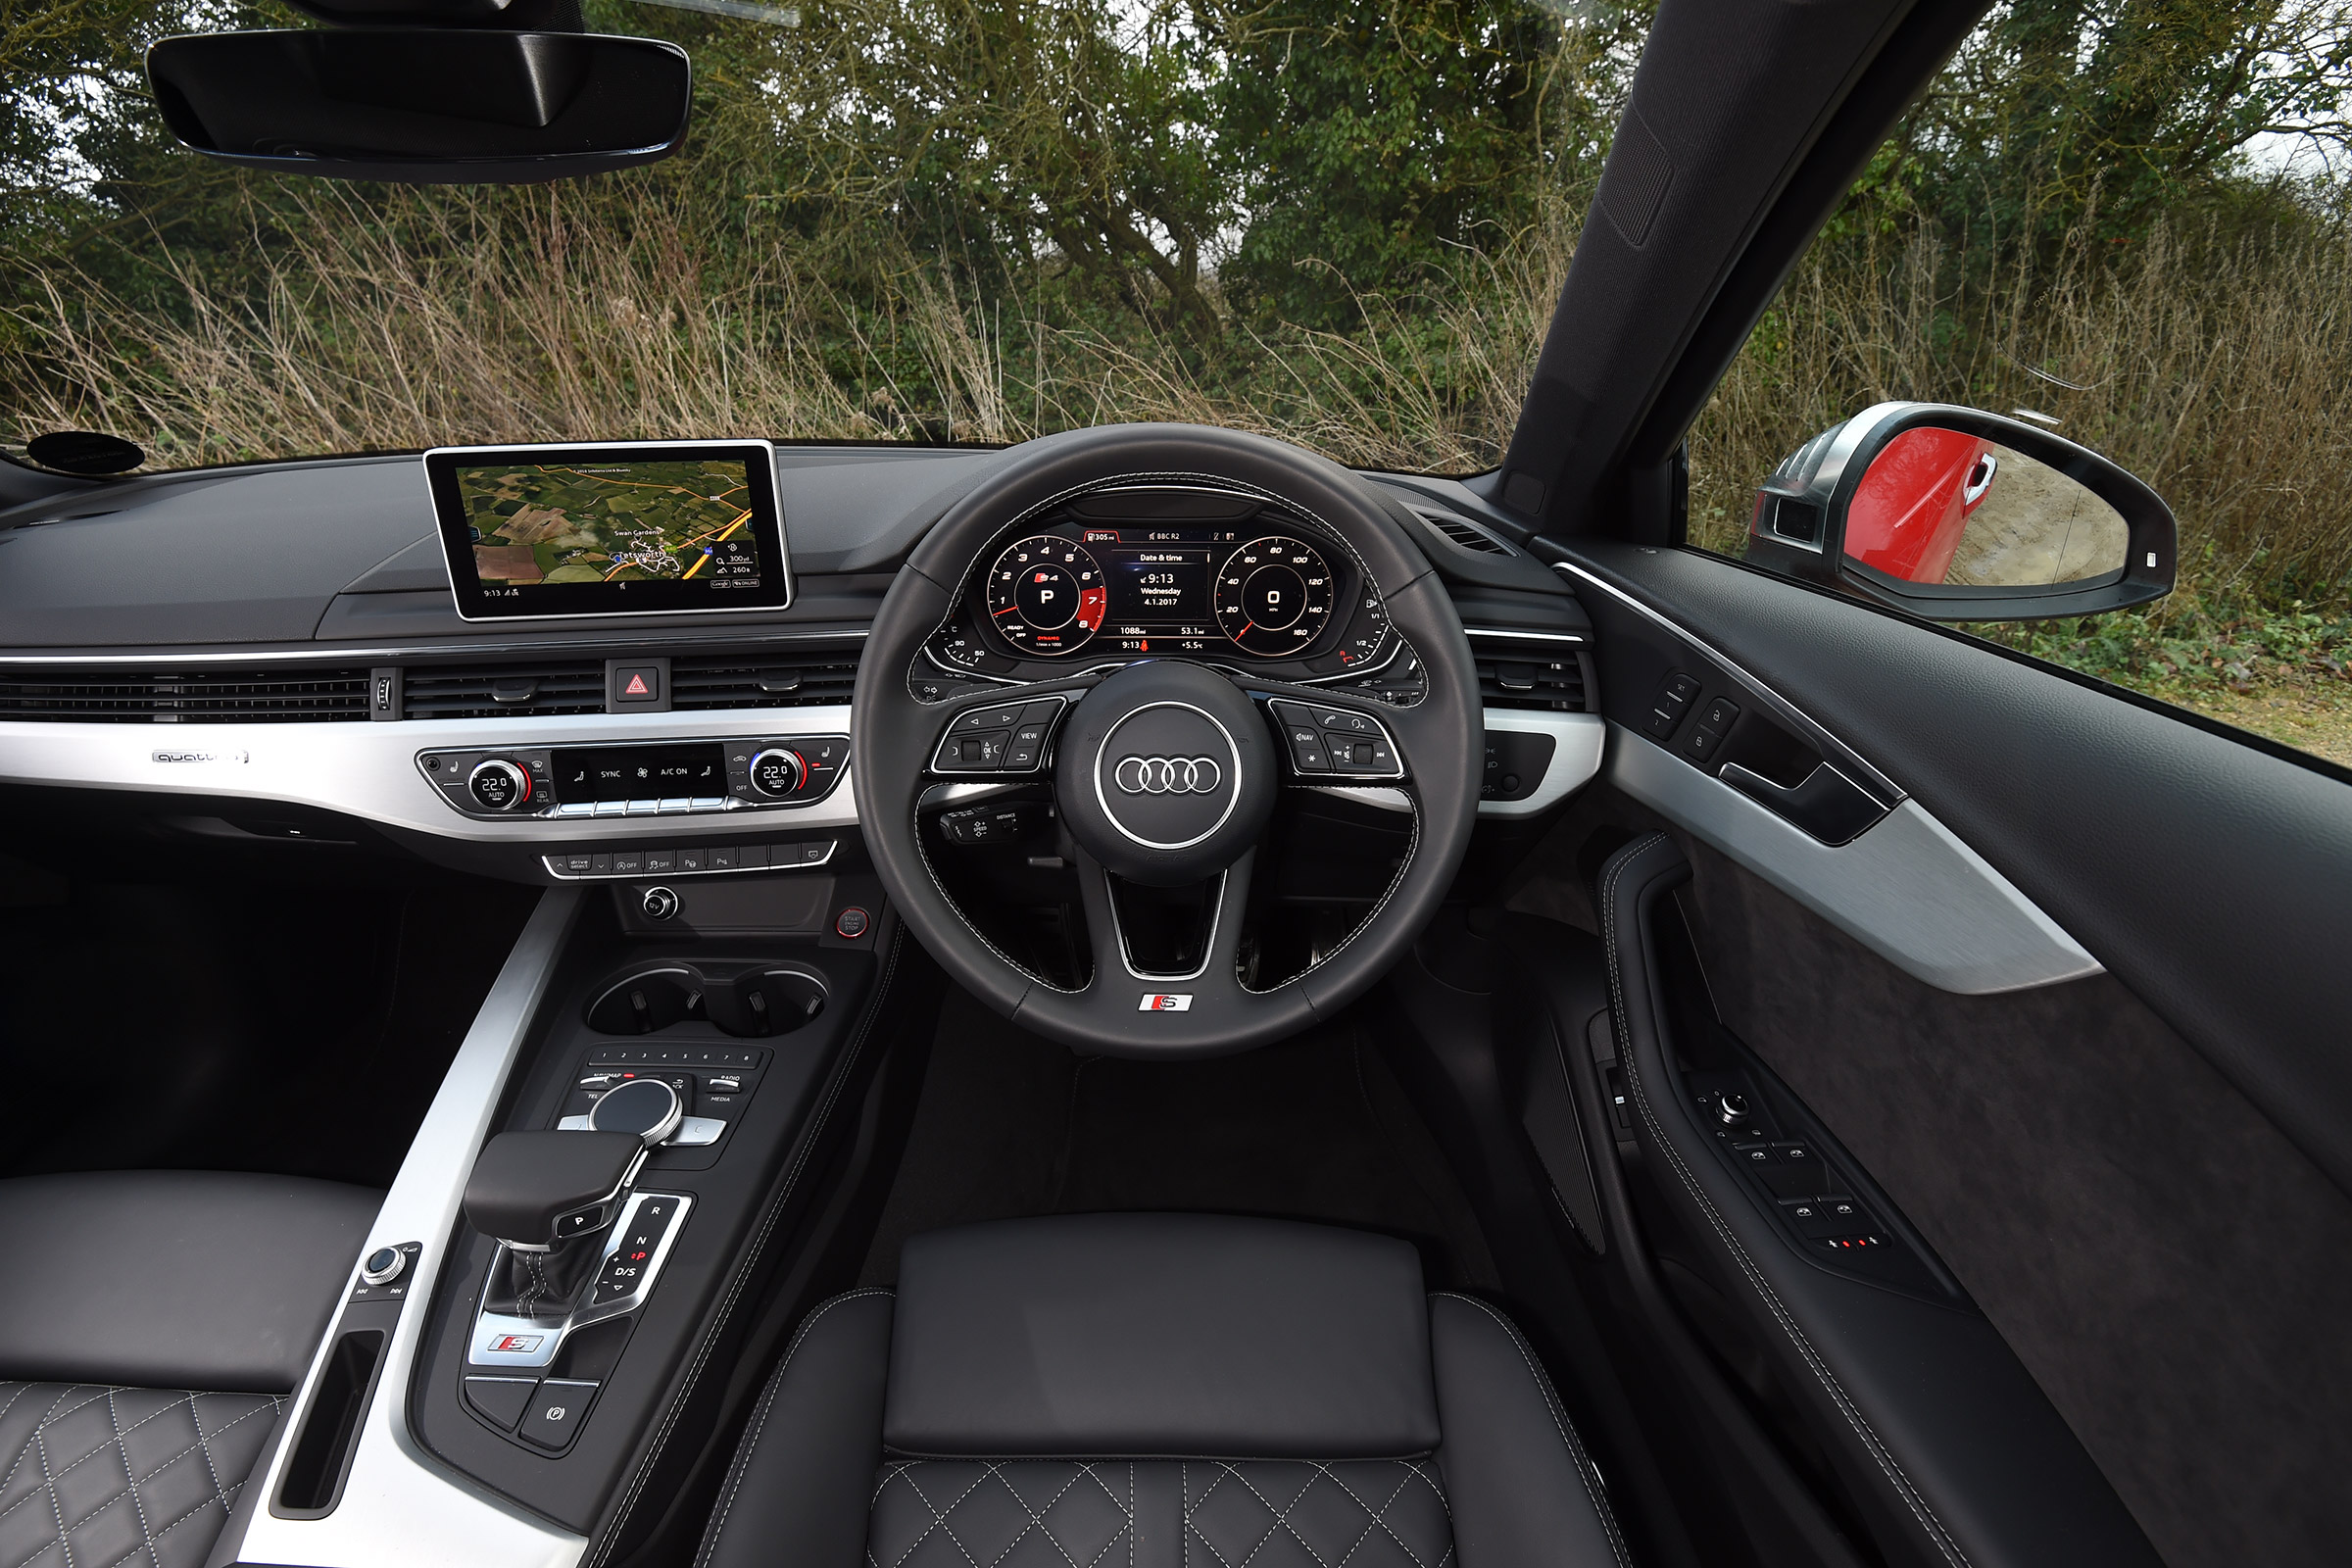 2017 Audi S4 Avant Interior Driver Cockpit Steering And Dash (View 10 of 17)